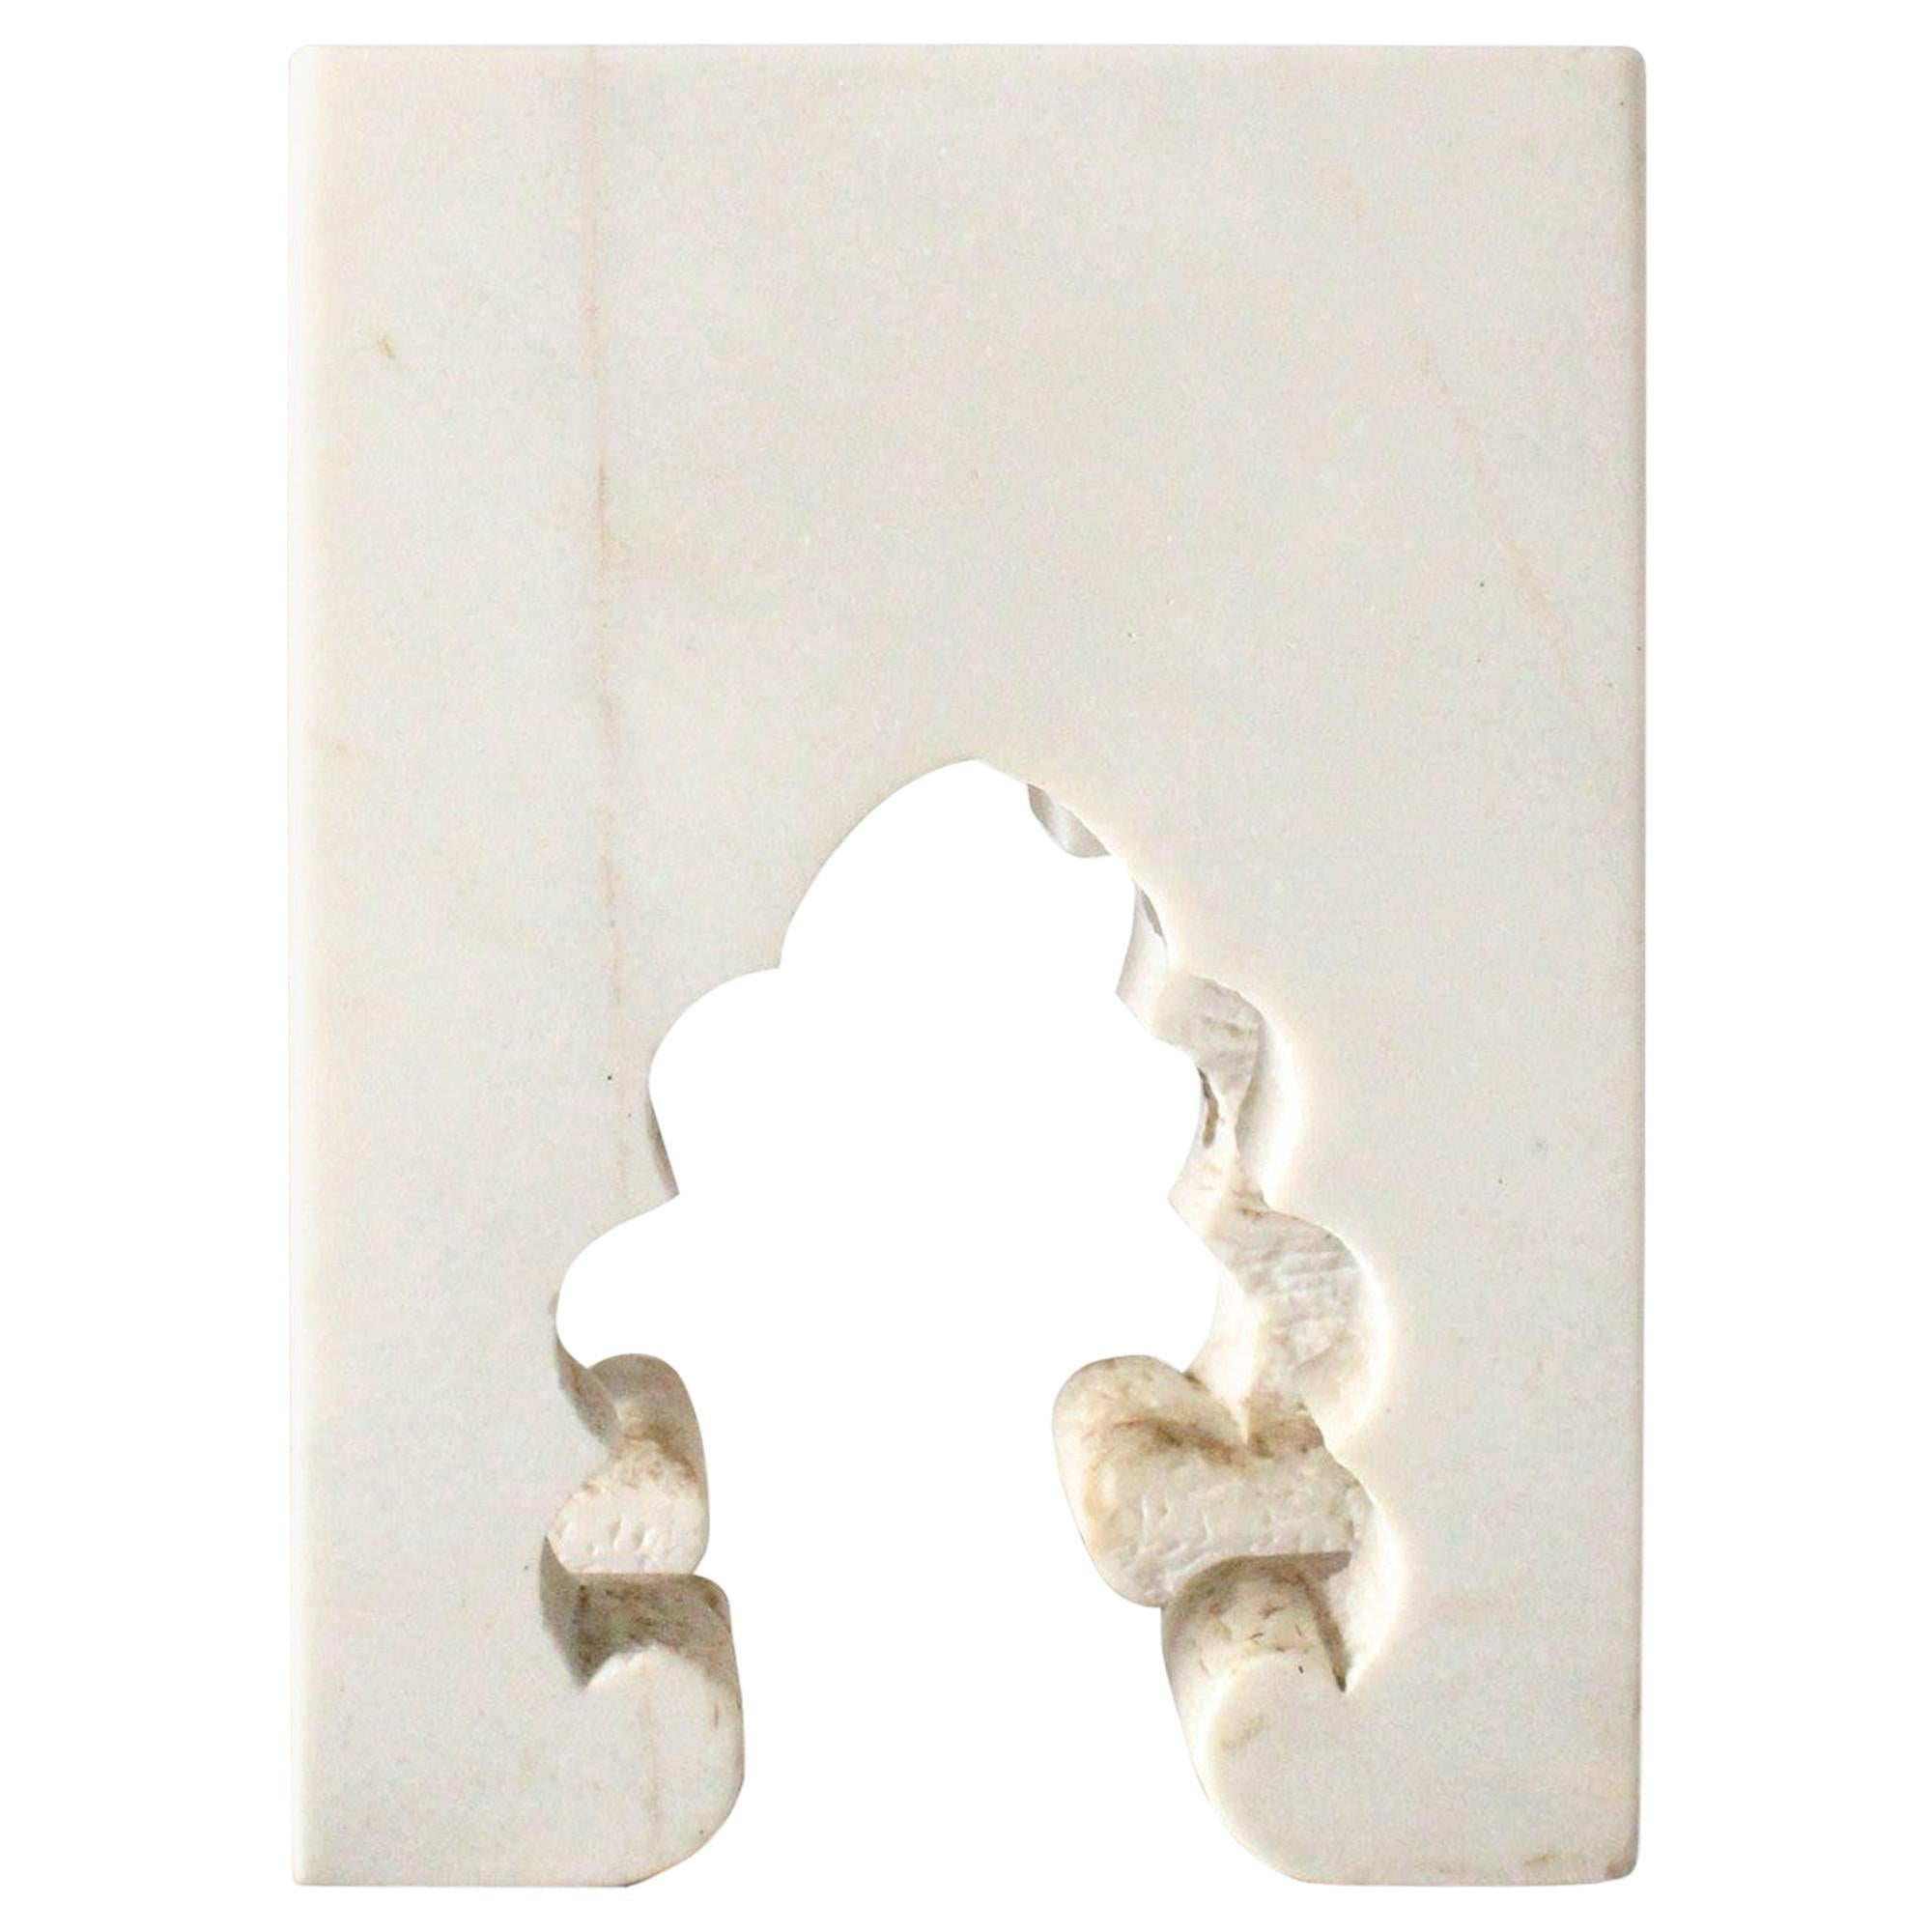 Jahangir II Side Table in White Marble by Paul Mathieu for Stephanie Odegard